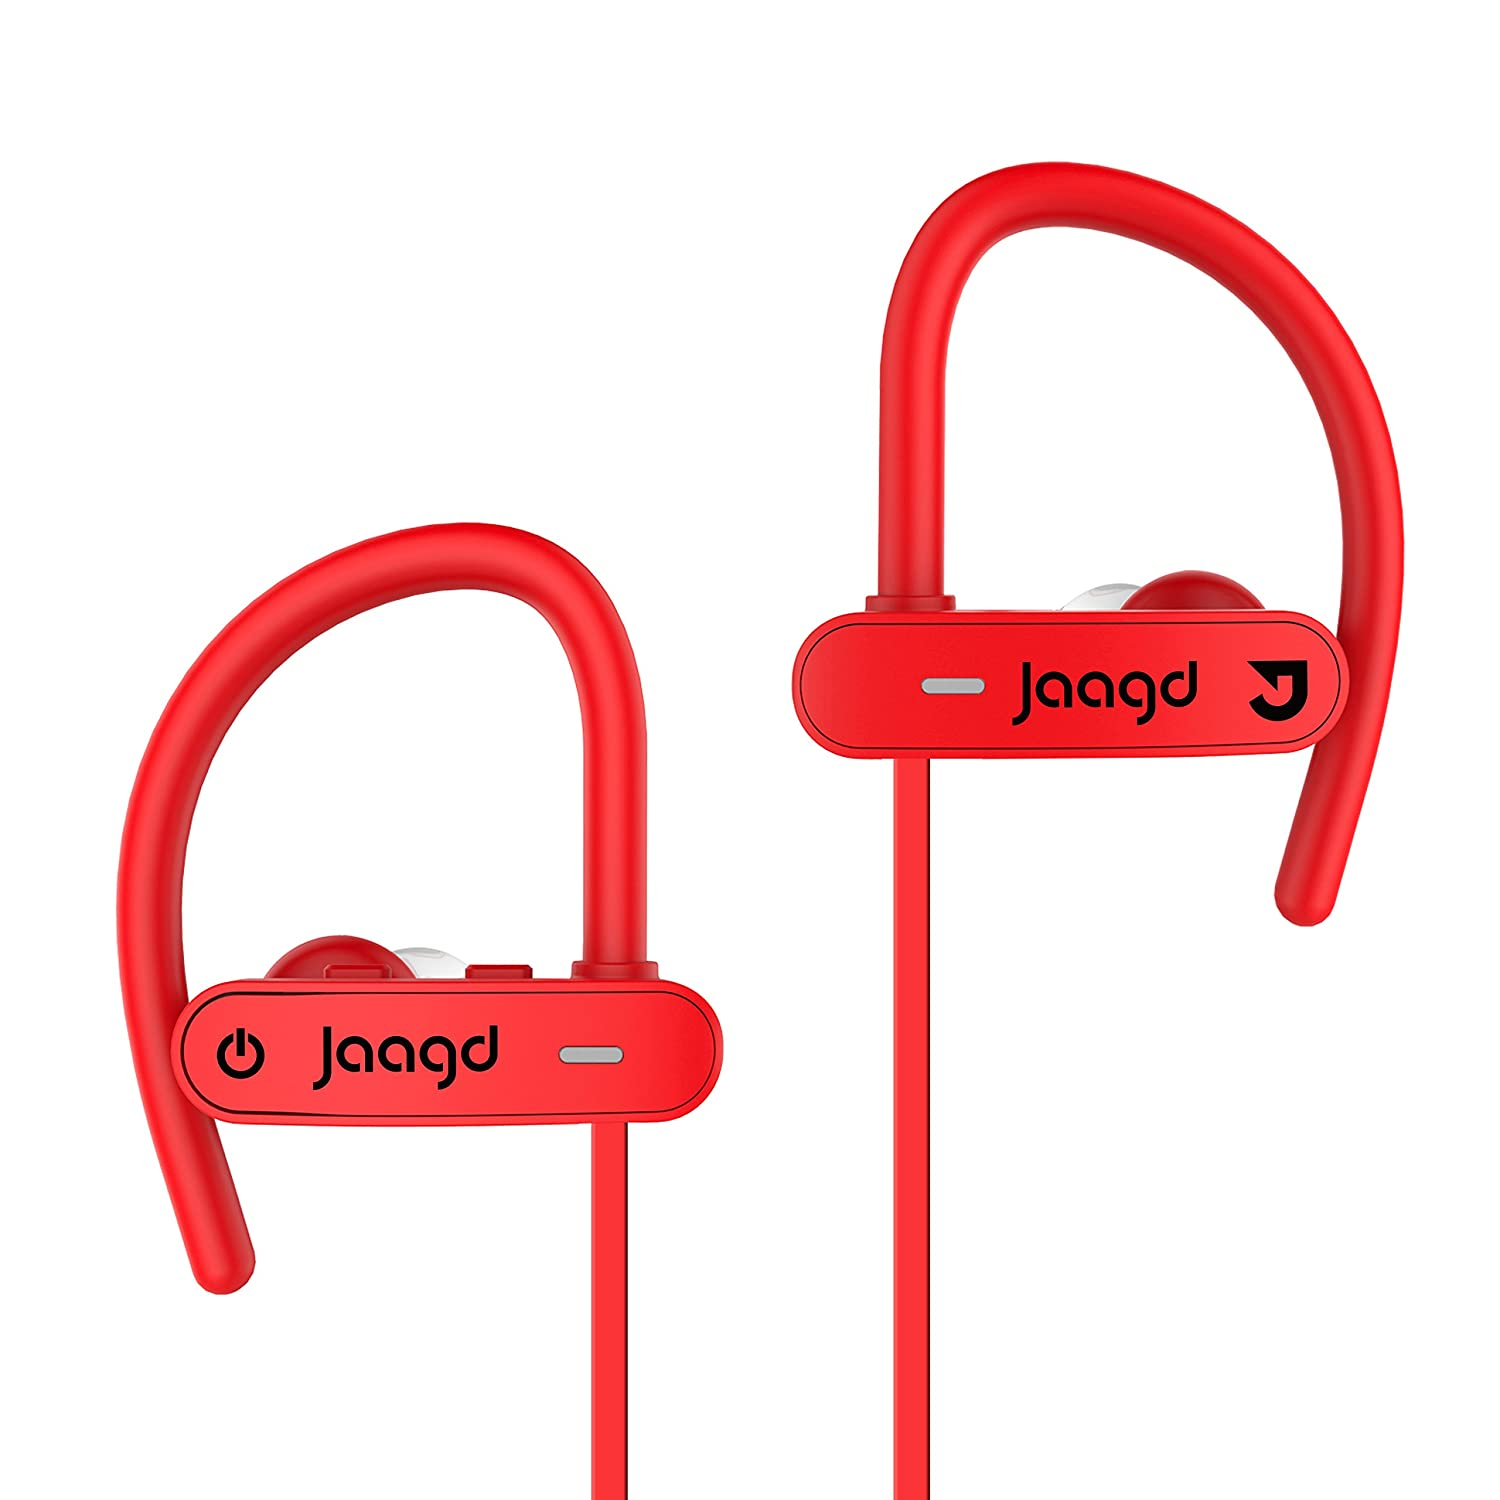 Jaagd Water-Resistant IPX7 Sports Exercise Bluetooth Headphone Earbuds for iPhone X, Samsung Galaxy and More Red